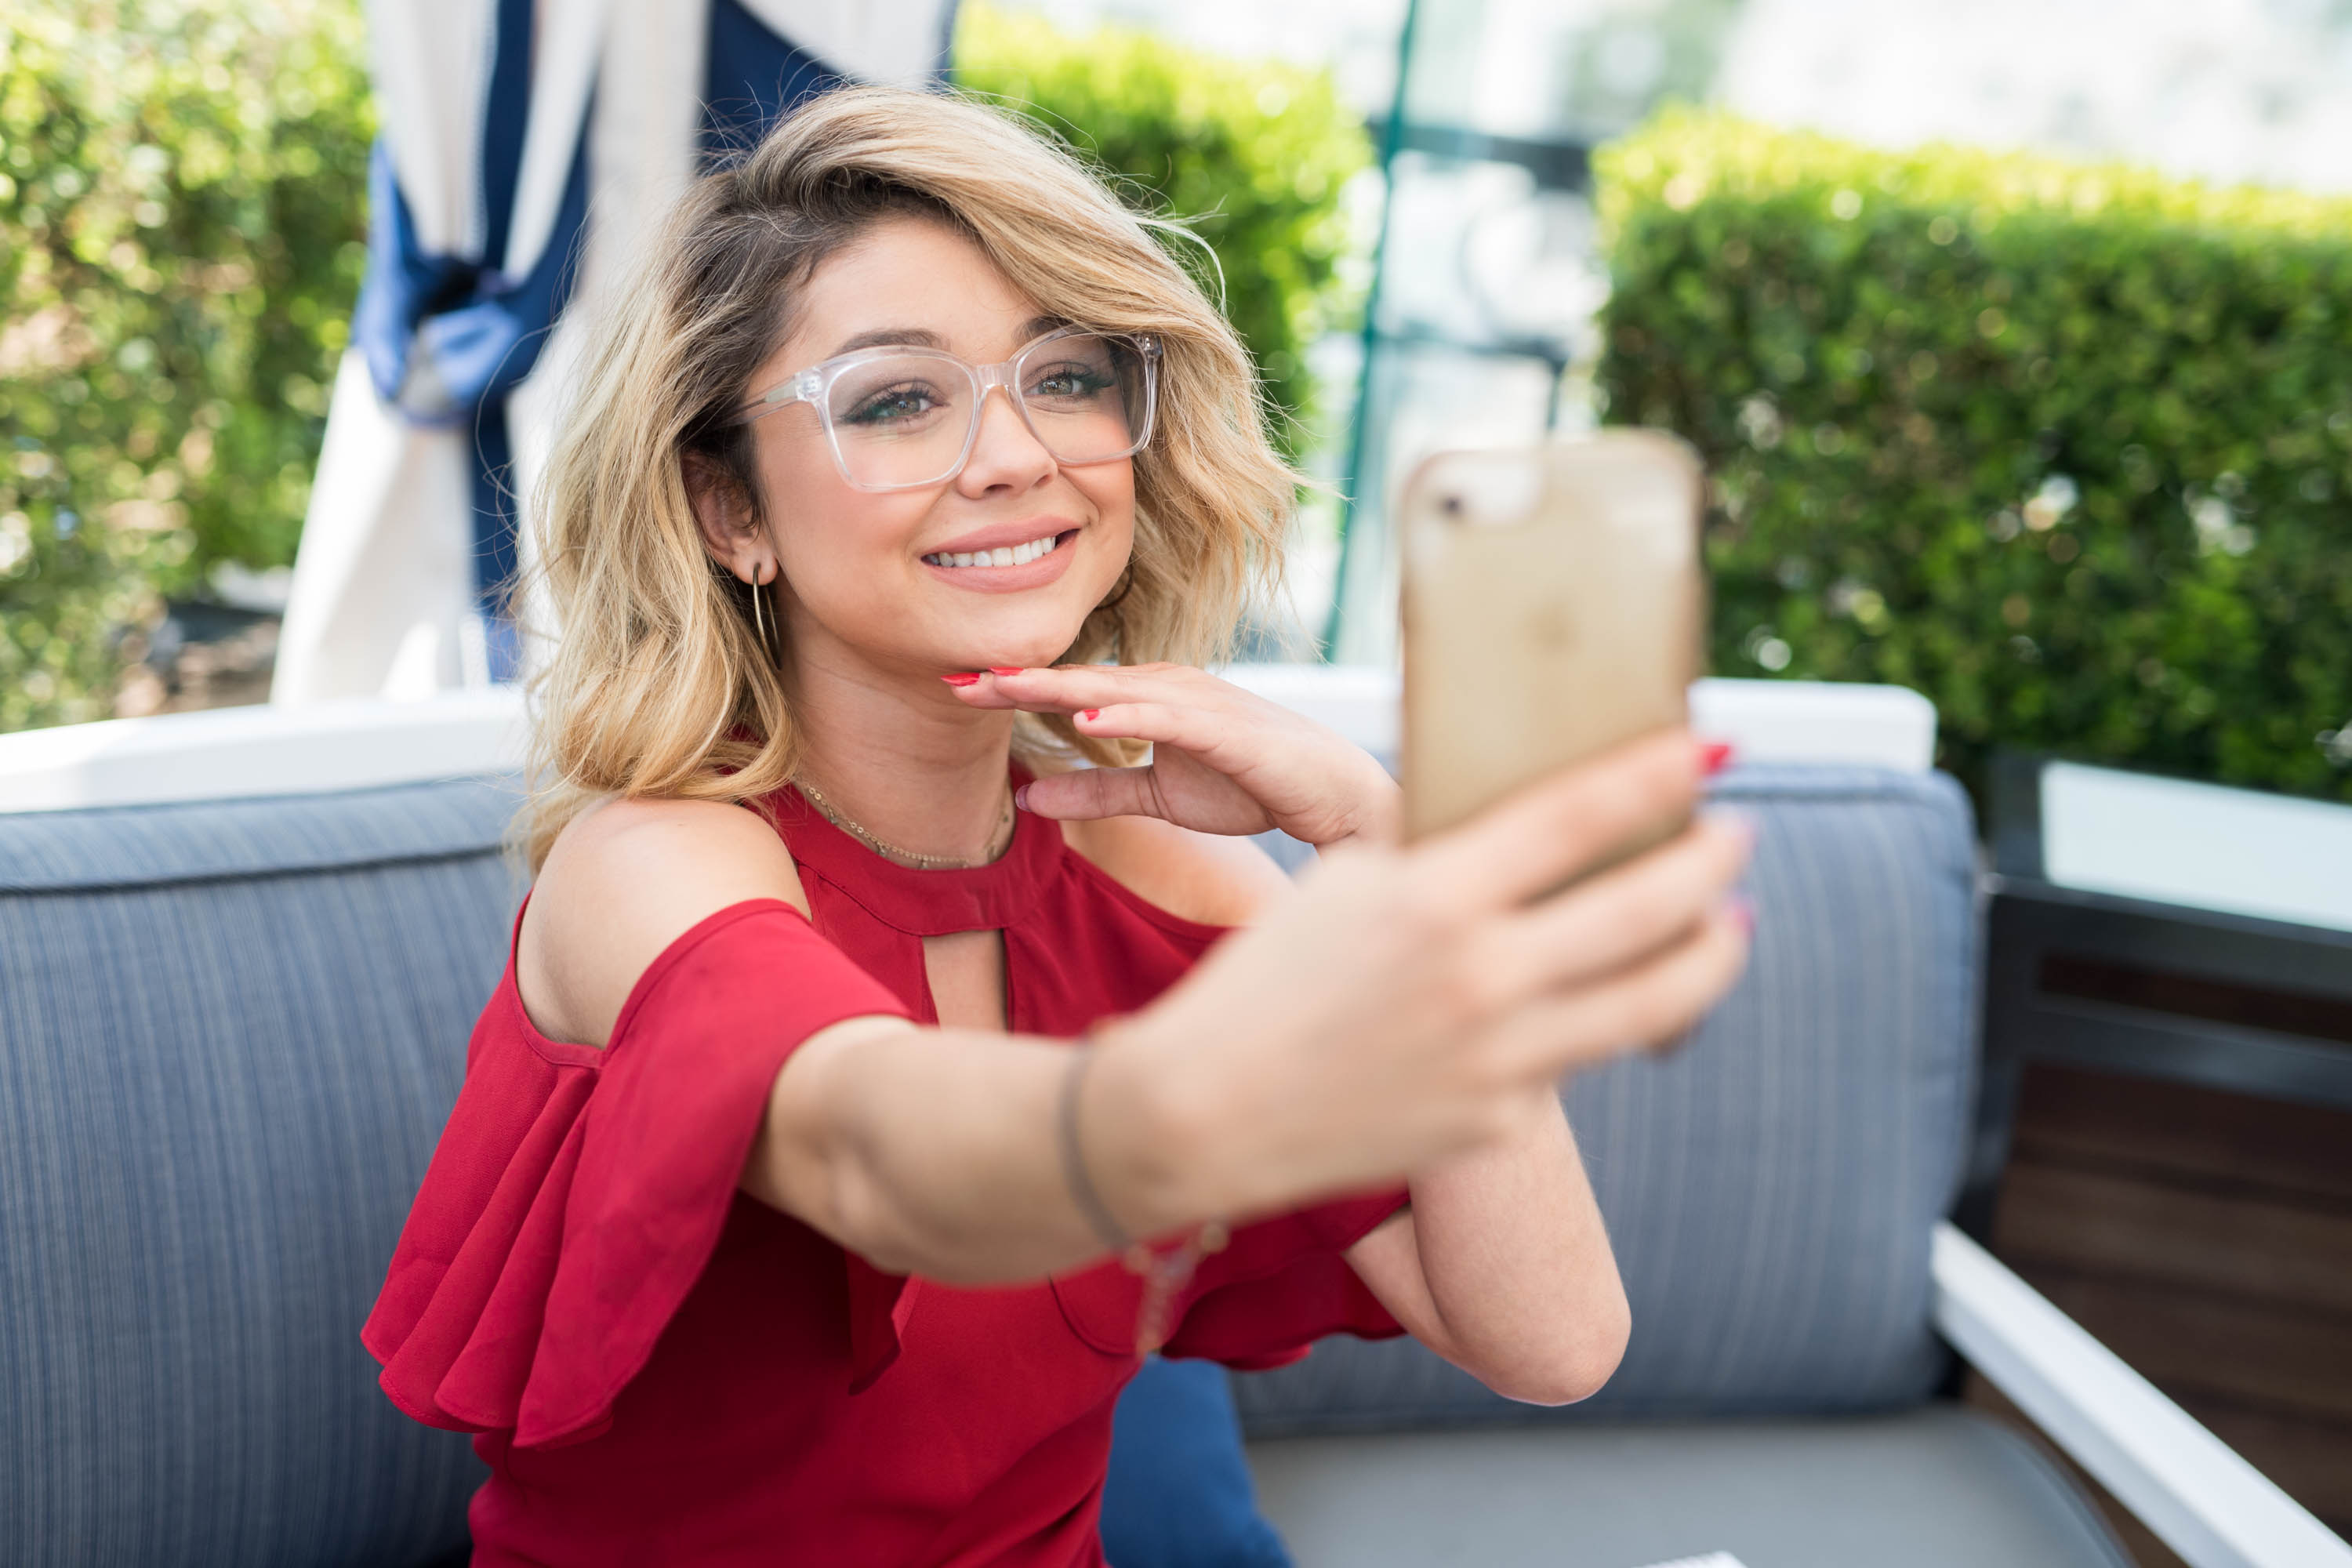 WEST HOLLYWOOD, CA - JULY 17: Actress Sarah Hyland attends Candie's event at The London Hotel on July 17, 2017 in West Hollywood, California. (Photo by Emma McIntyre/Getty Images for Candie's)